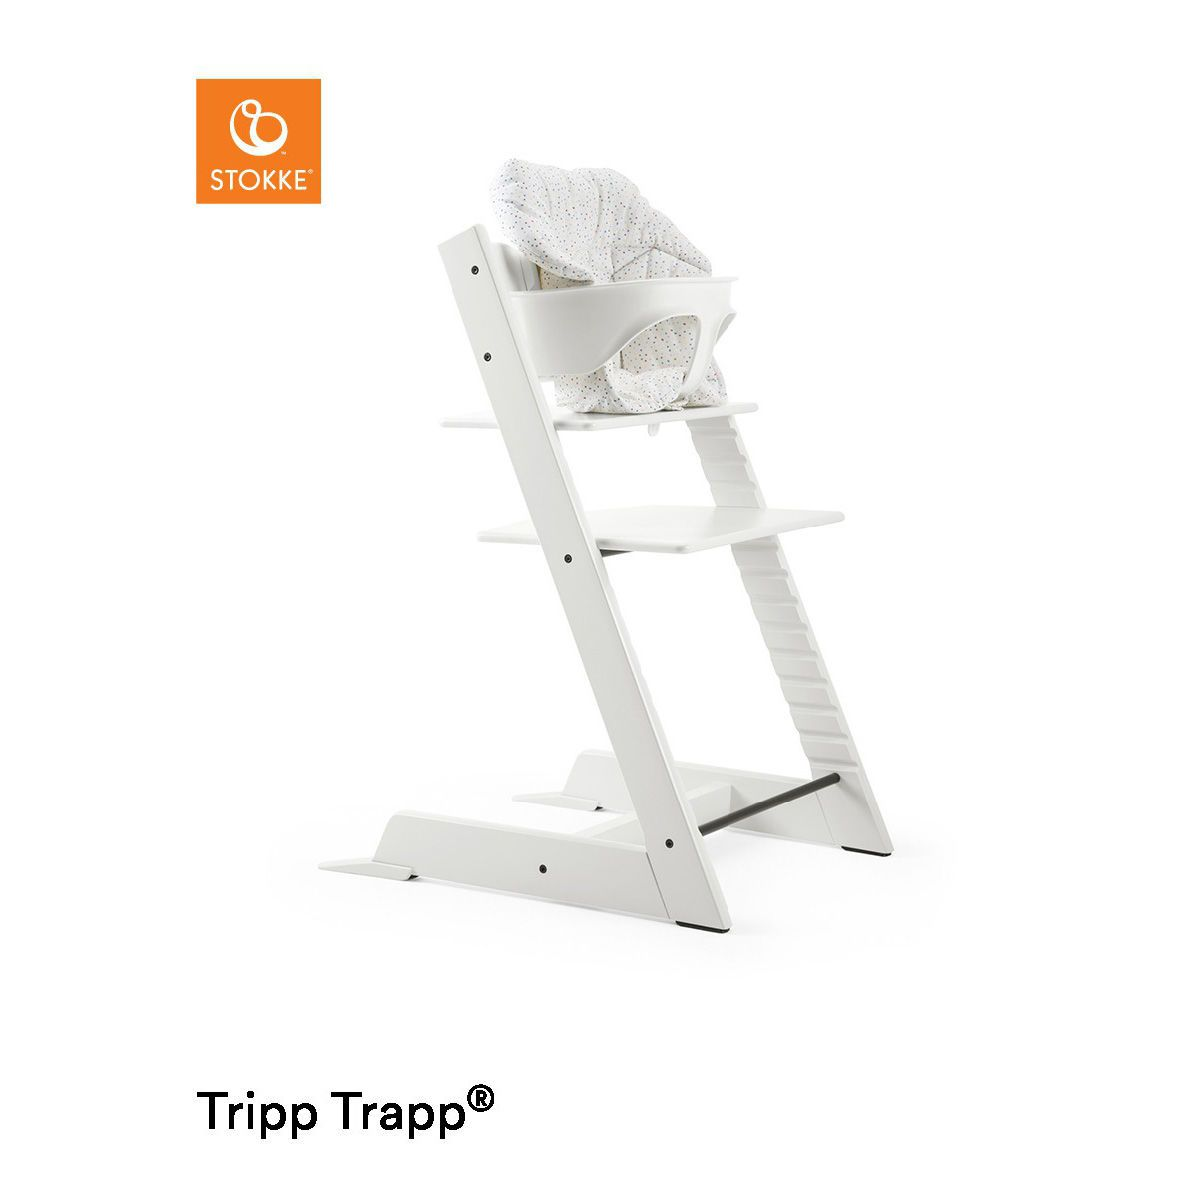 stokke tripp trapp mit babyset kissen. Black Bedroom Furniture Sets. Home Design Ideas